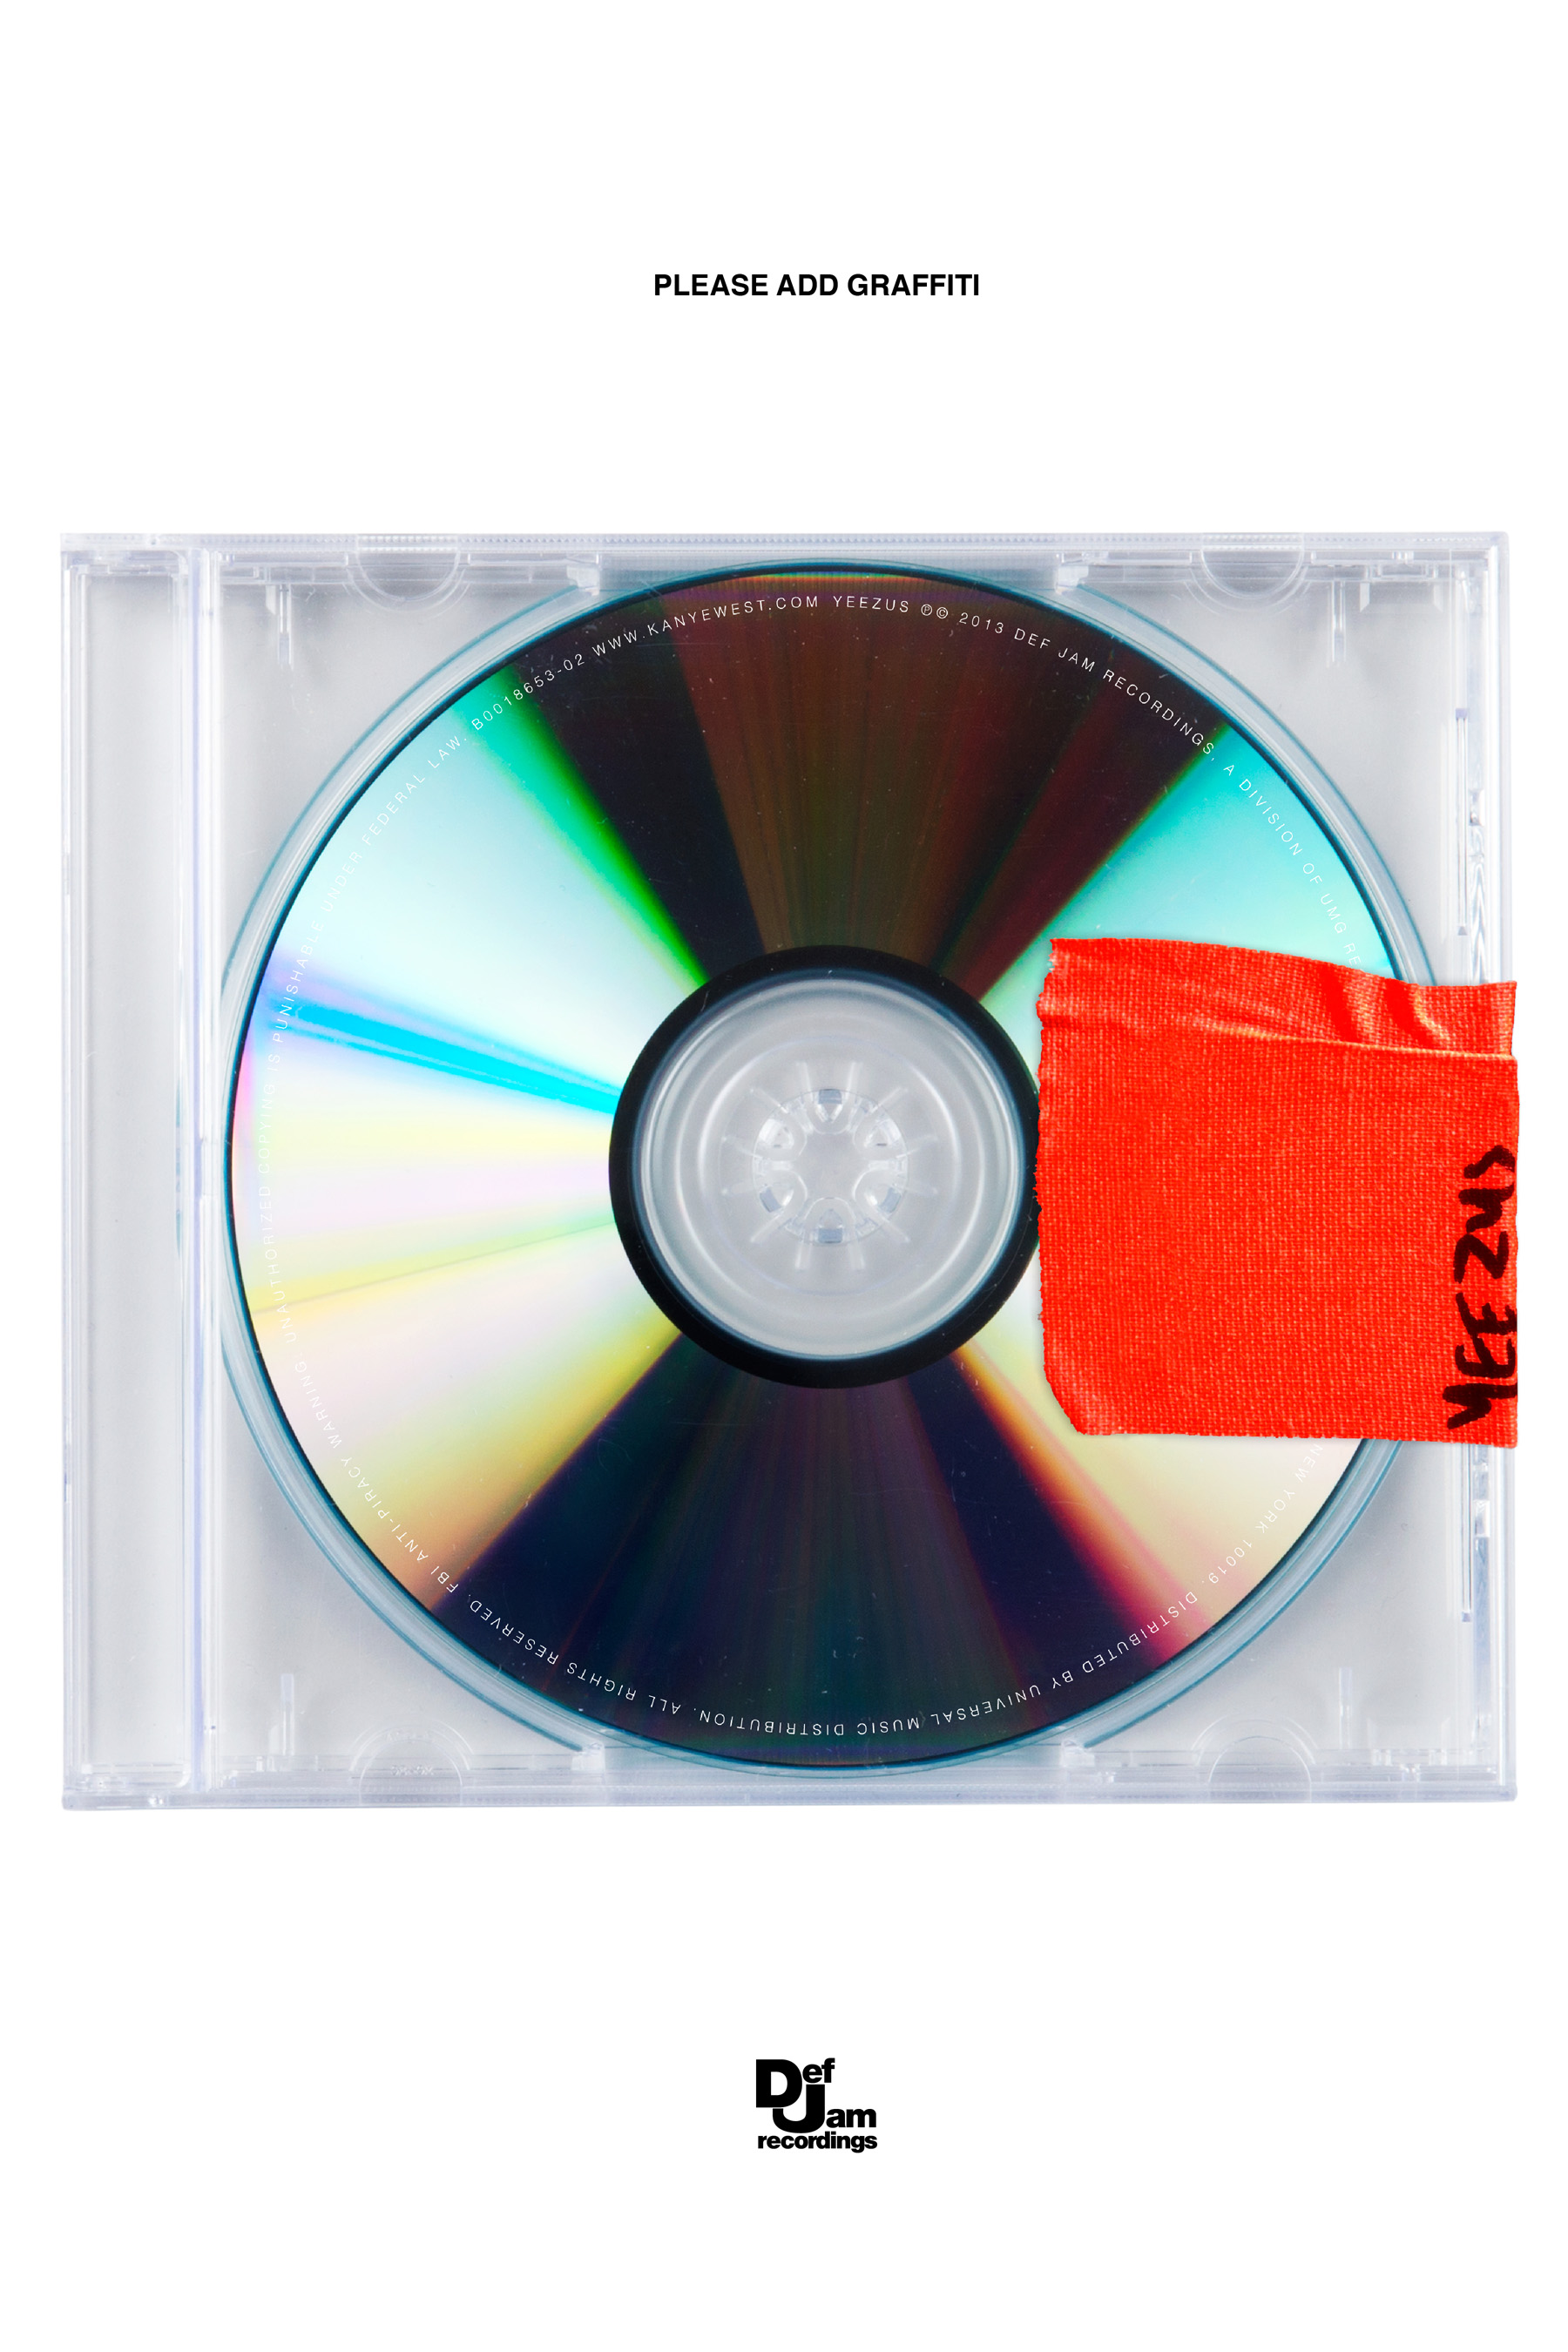 Kanye-West_Yeezus_Please